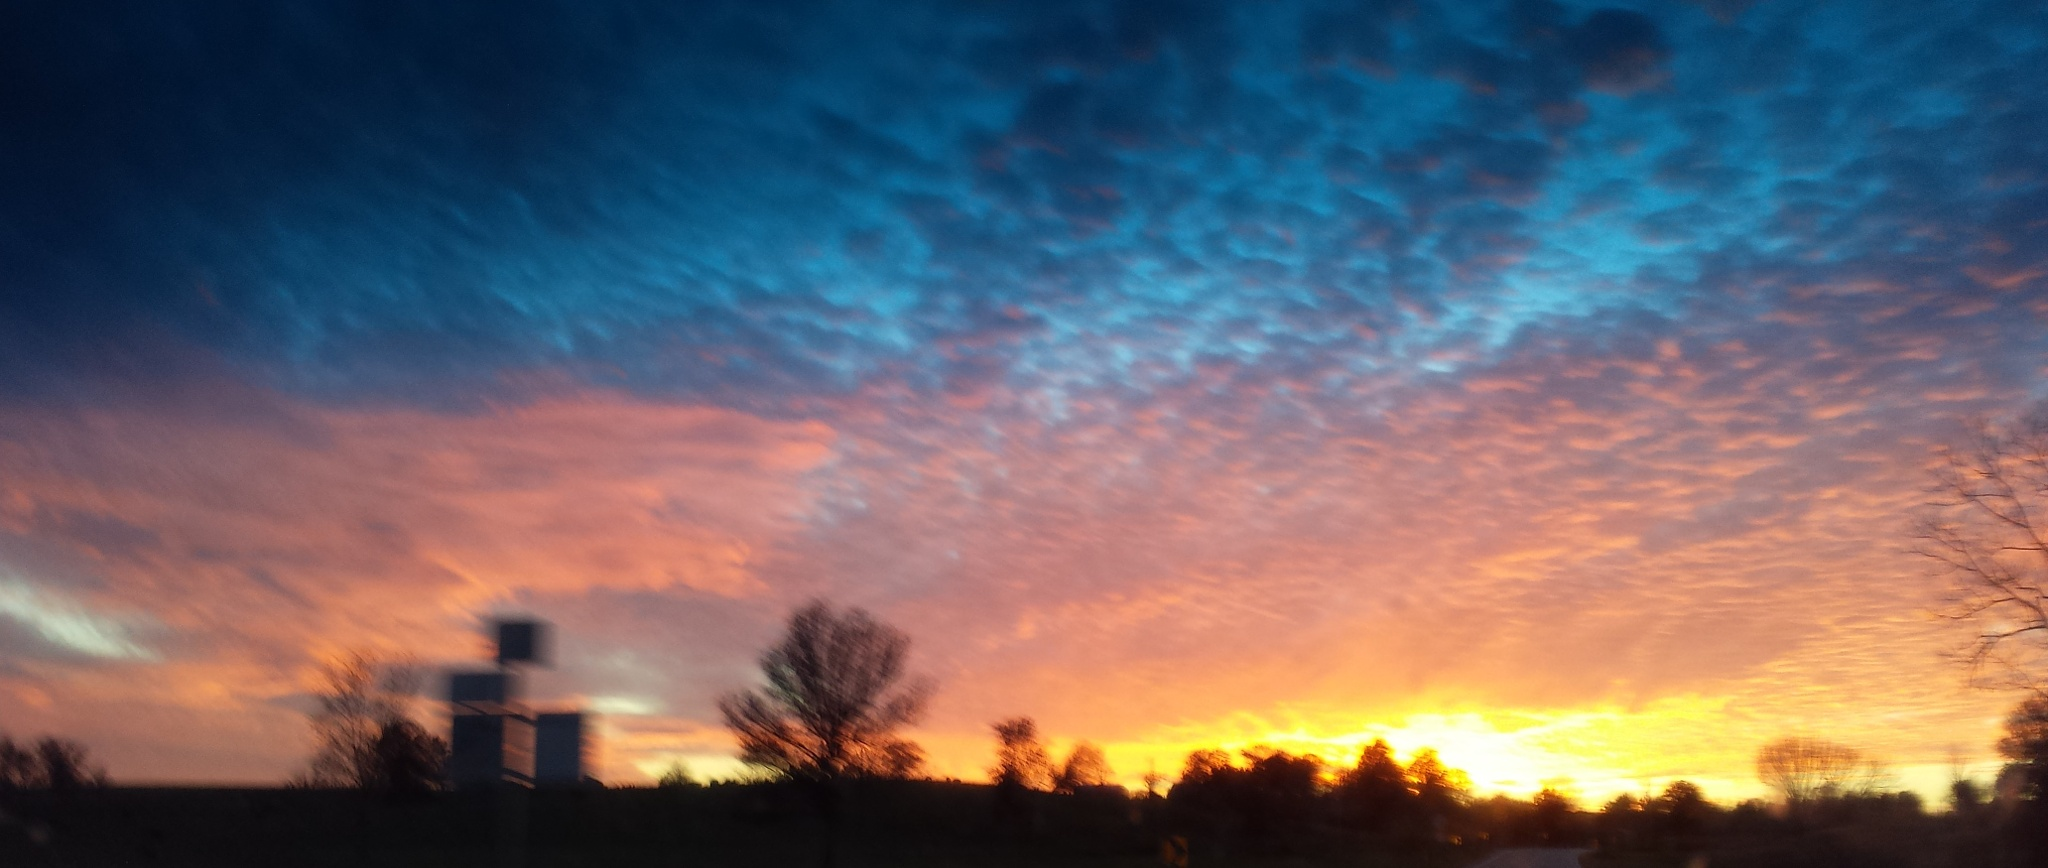 Cotton Candy in the sky by april.throgmorton